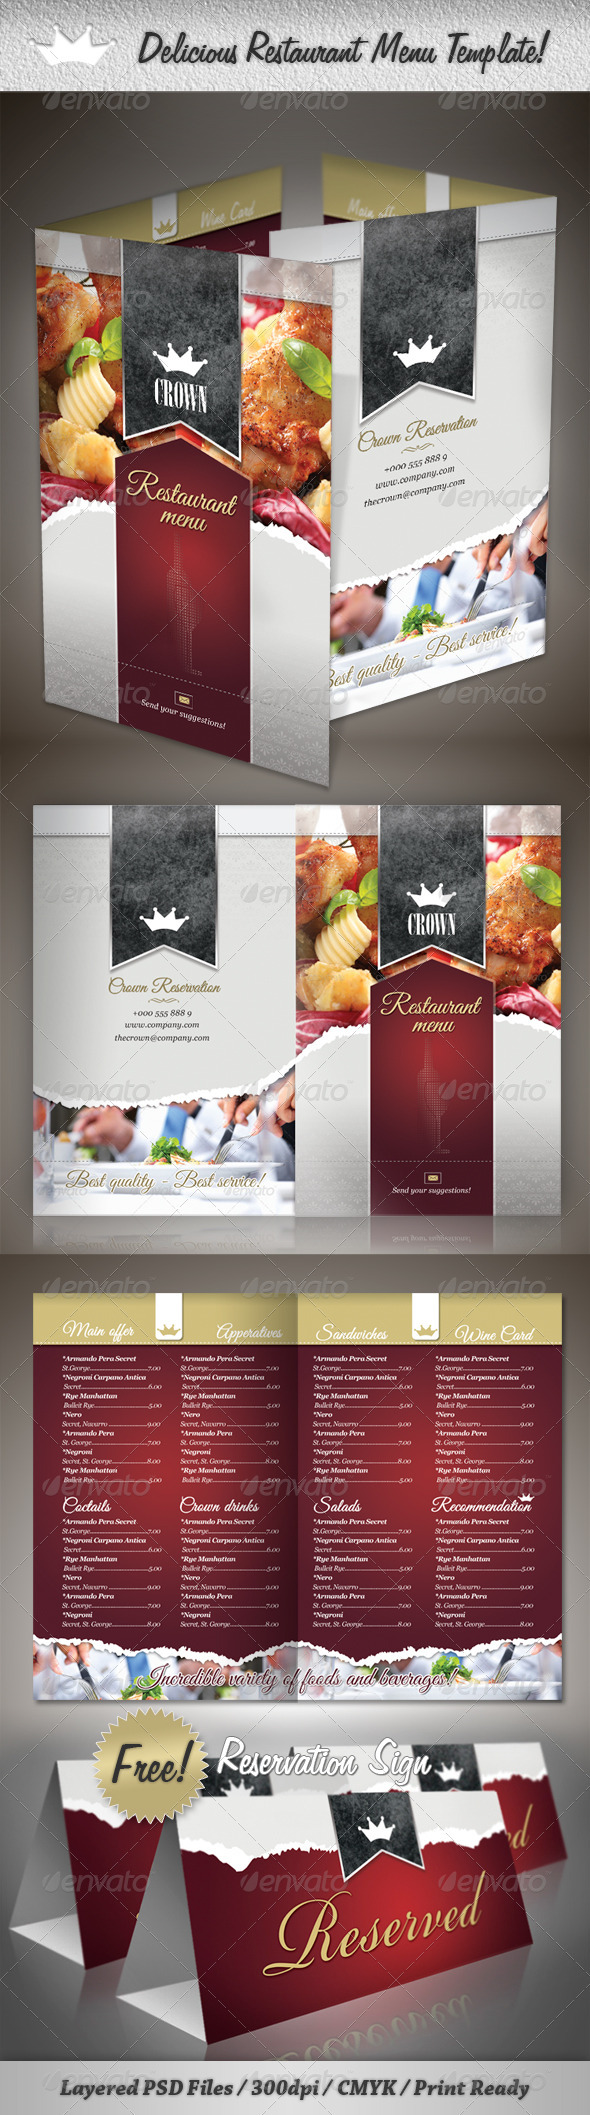 Delicious Restaurant Menu Template - Food Menus Print Templates